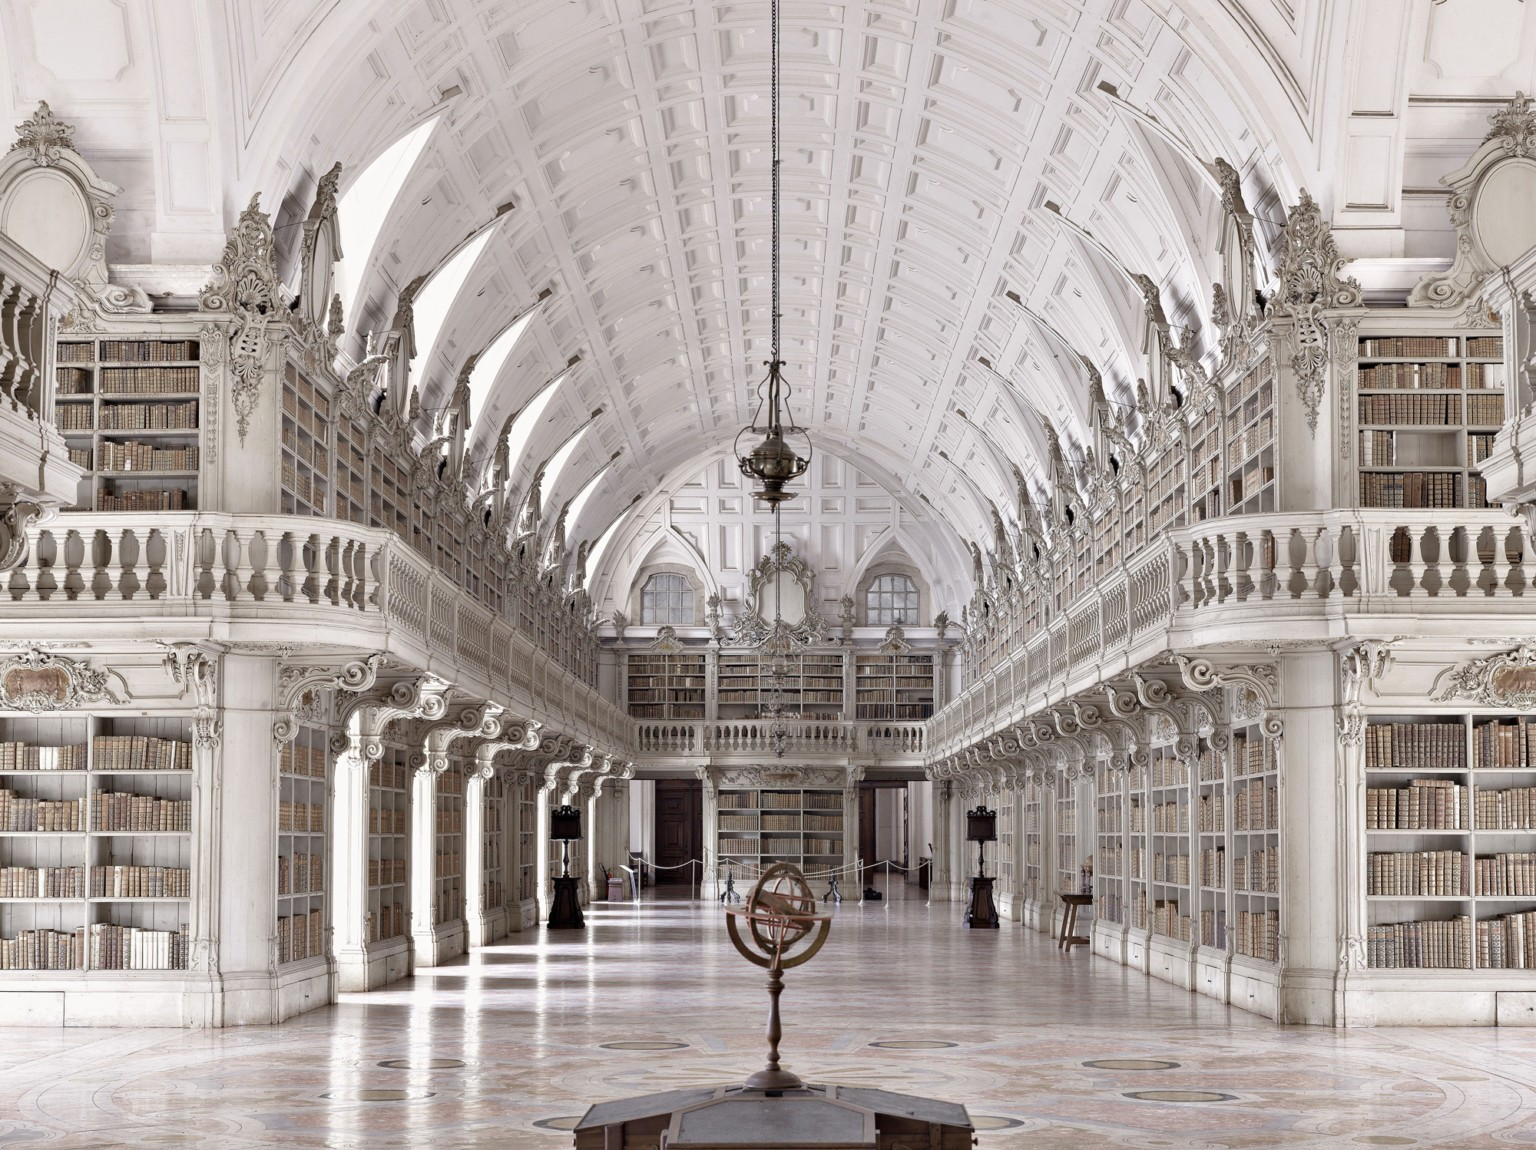 Look Inside the World's Most Beautiful Libraries in a New 560-Page Photo Book by Massimo Listri